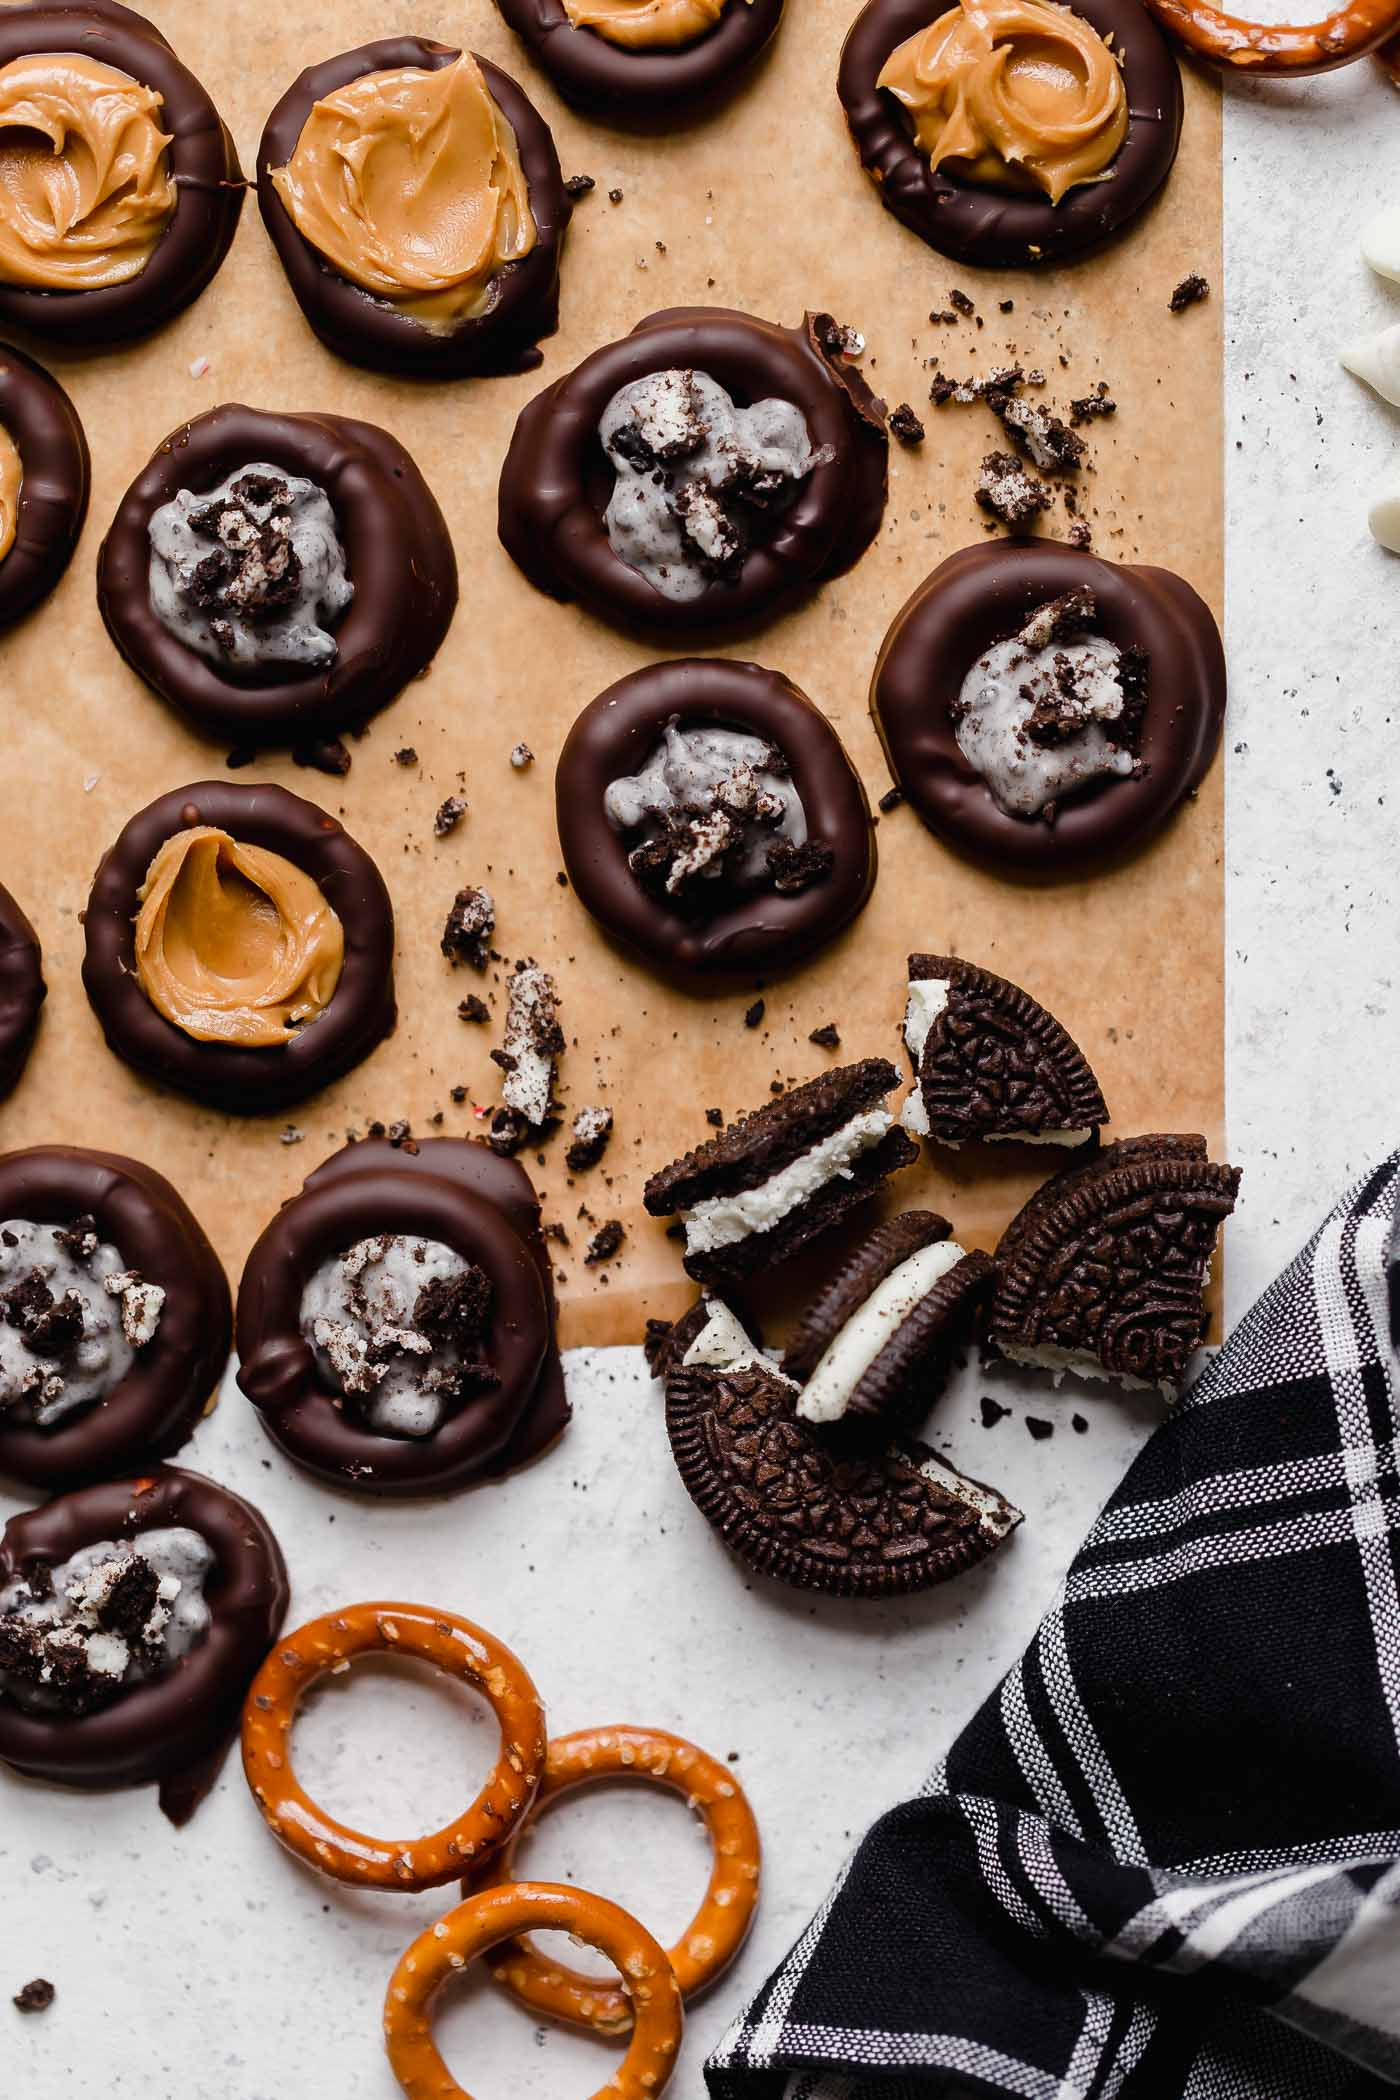 stuffed dark chocolate dipped pretzels. holiday pretzel rounds get filled with peanut butter, salted caramel, oreos, peppermint candies, or any other fillings you love, & covered in dark chocolate. these stuffed dark chocolate dipped pretzels take chocolate covered pretzels to the next level, & they're the perfect easy no-bake treat to add to your christmas cookie plates this year! #playswellwithbutter #chocolatepretzels #nobakedessert #chocolatedippedpretzels #stuffedpretzels #howtomakechocolatepretzels